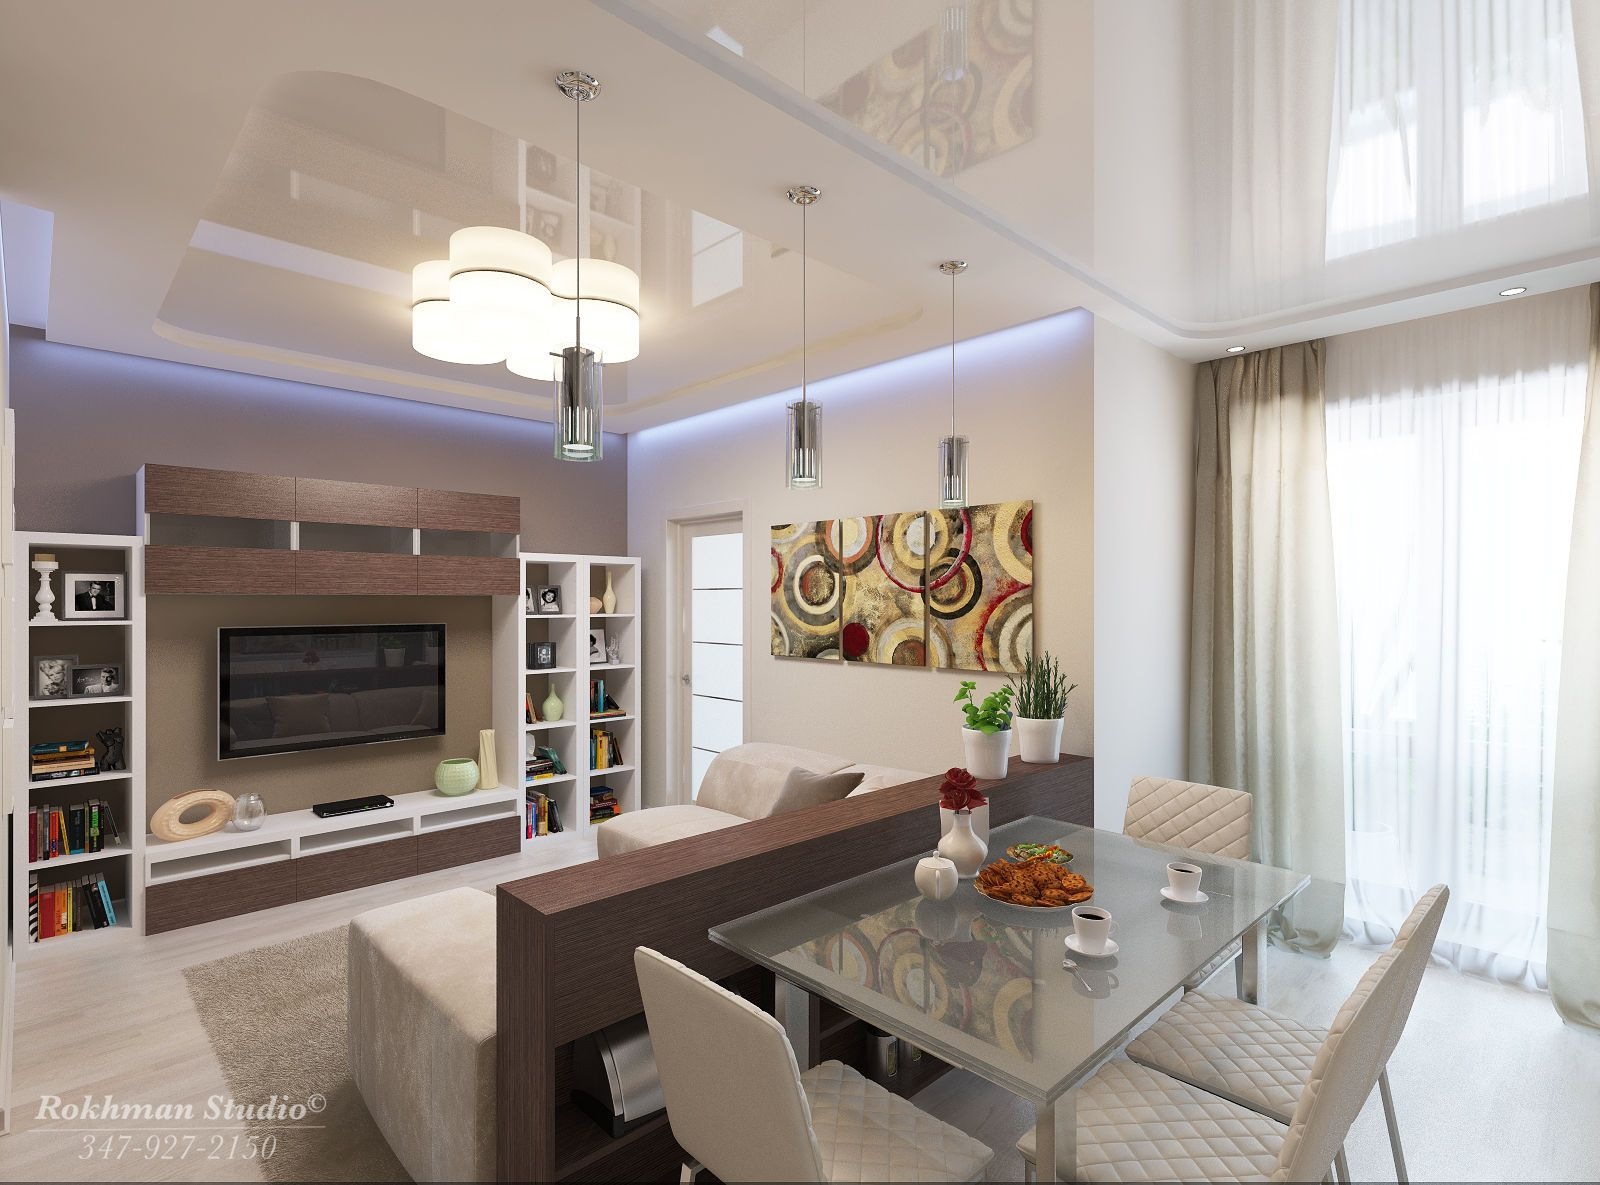 Pinllindsey On Decorating  Room Layouts  Pinterest Best How To Decorate A Living Room And Dining Room Combination Decorating Inspiration